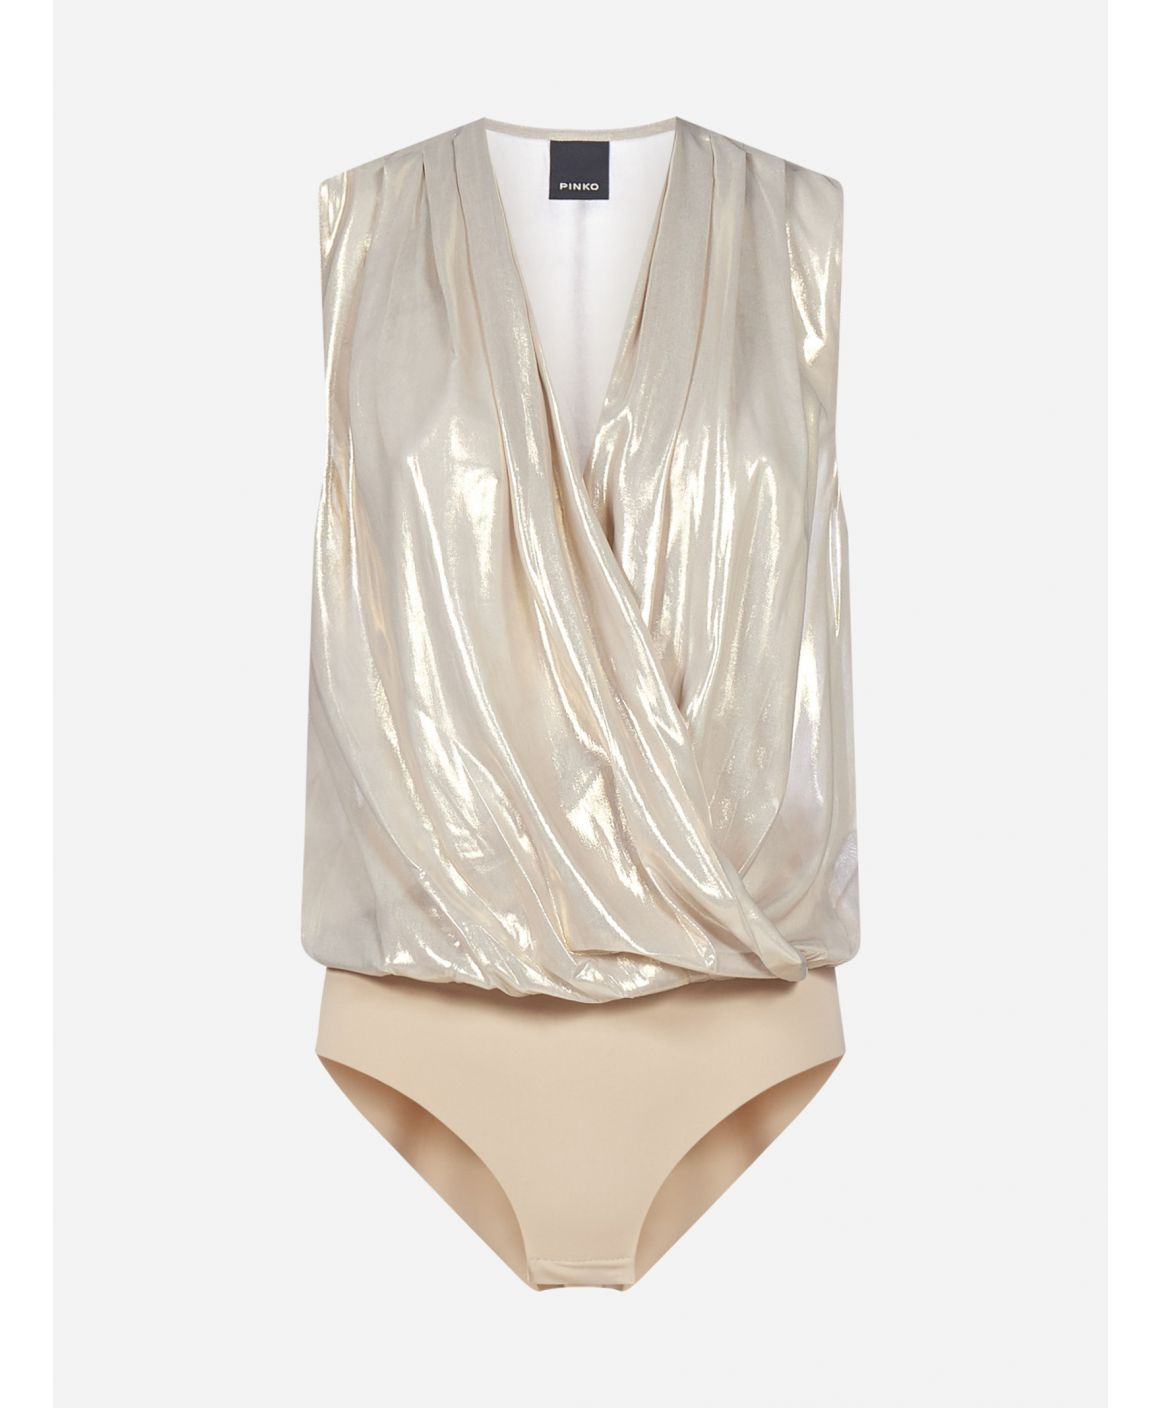 Ines metallized satin bodysuit